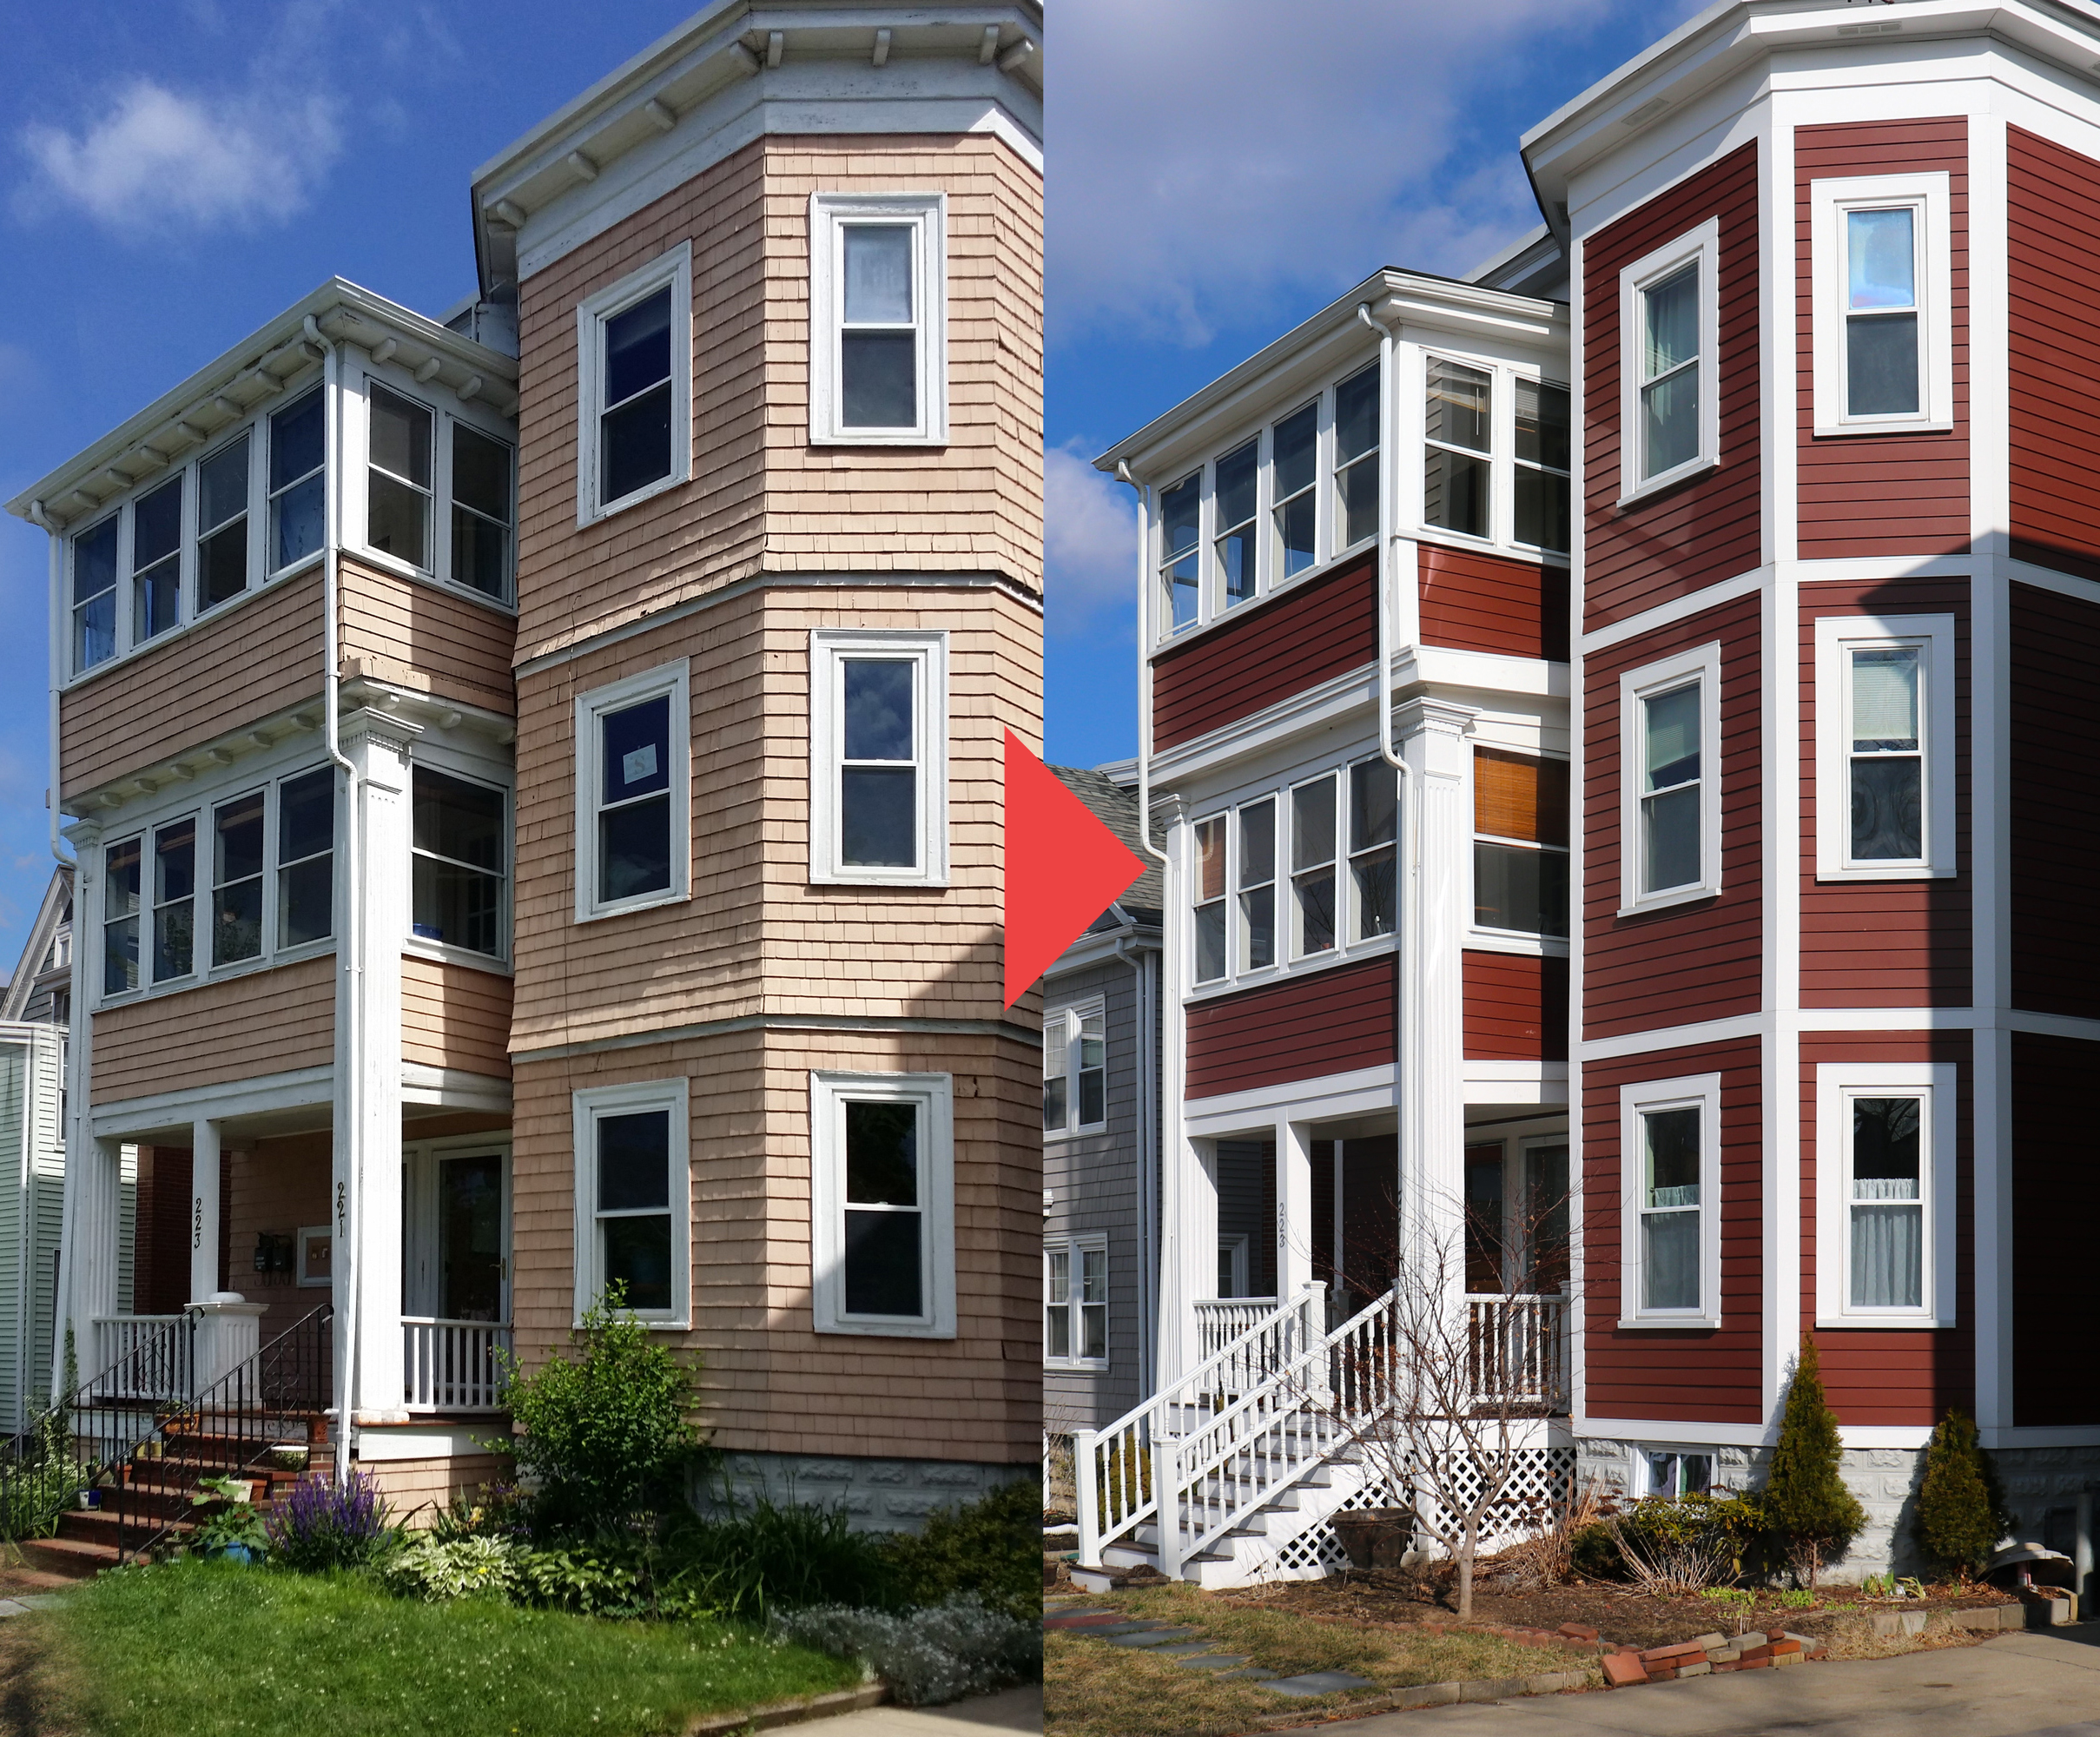 Fiber Cement Siding. Before And After. Residential Siding company